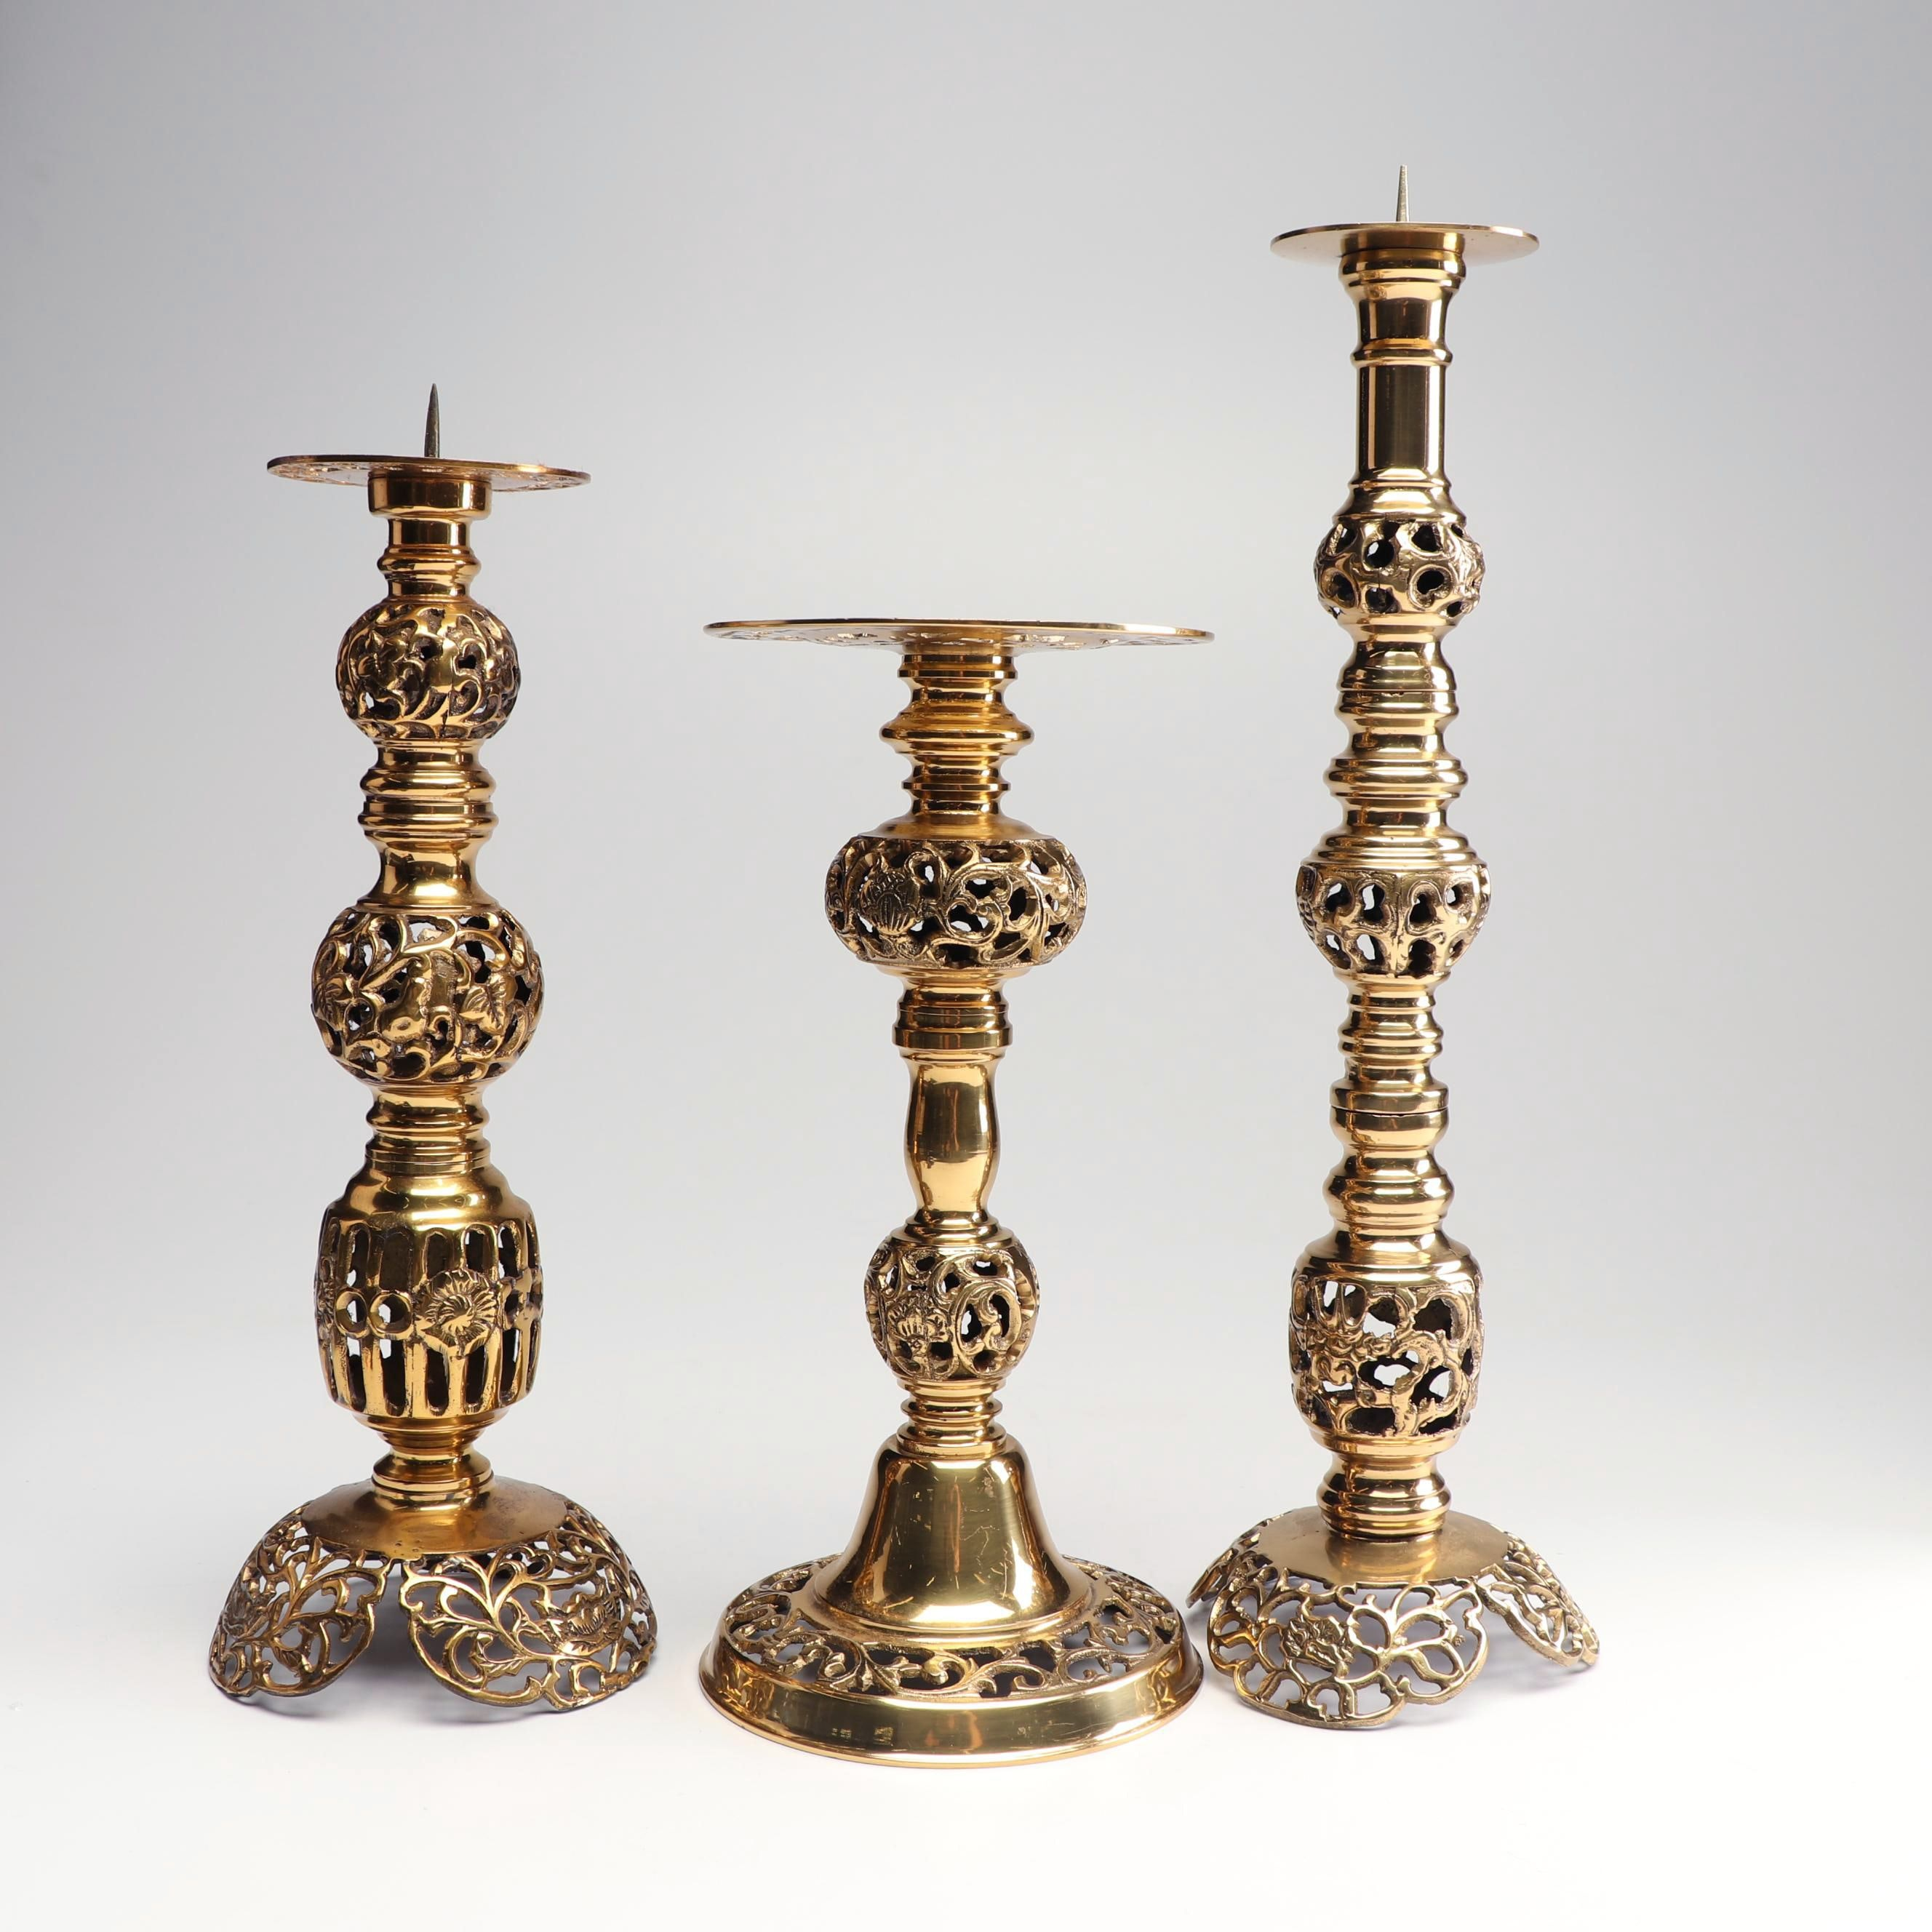 Reticulated Cast Brass Pricket and Pillar Stand Candlesticks